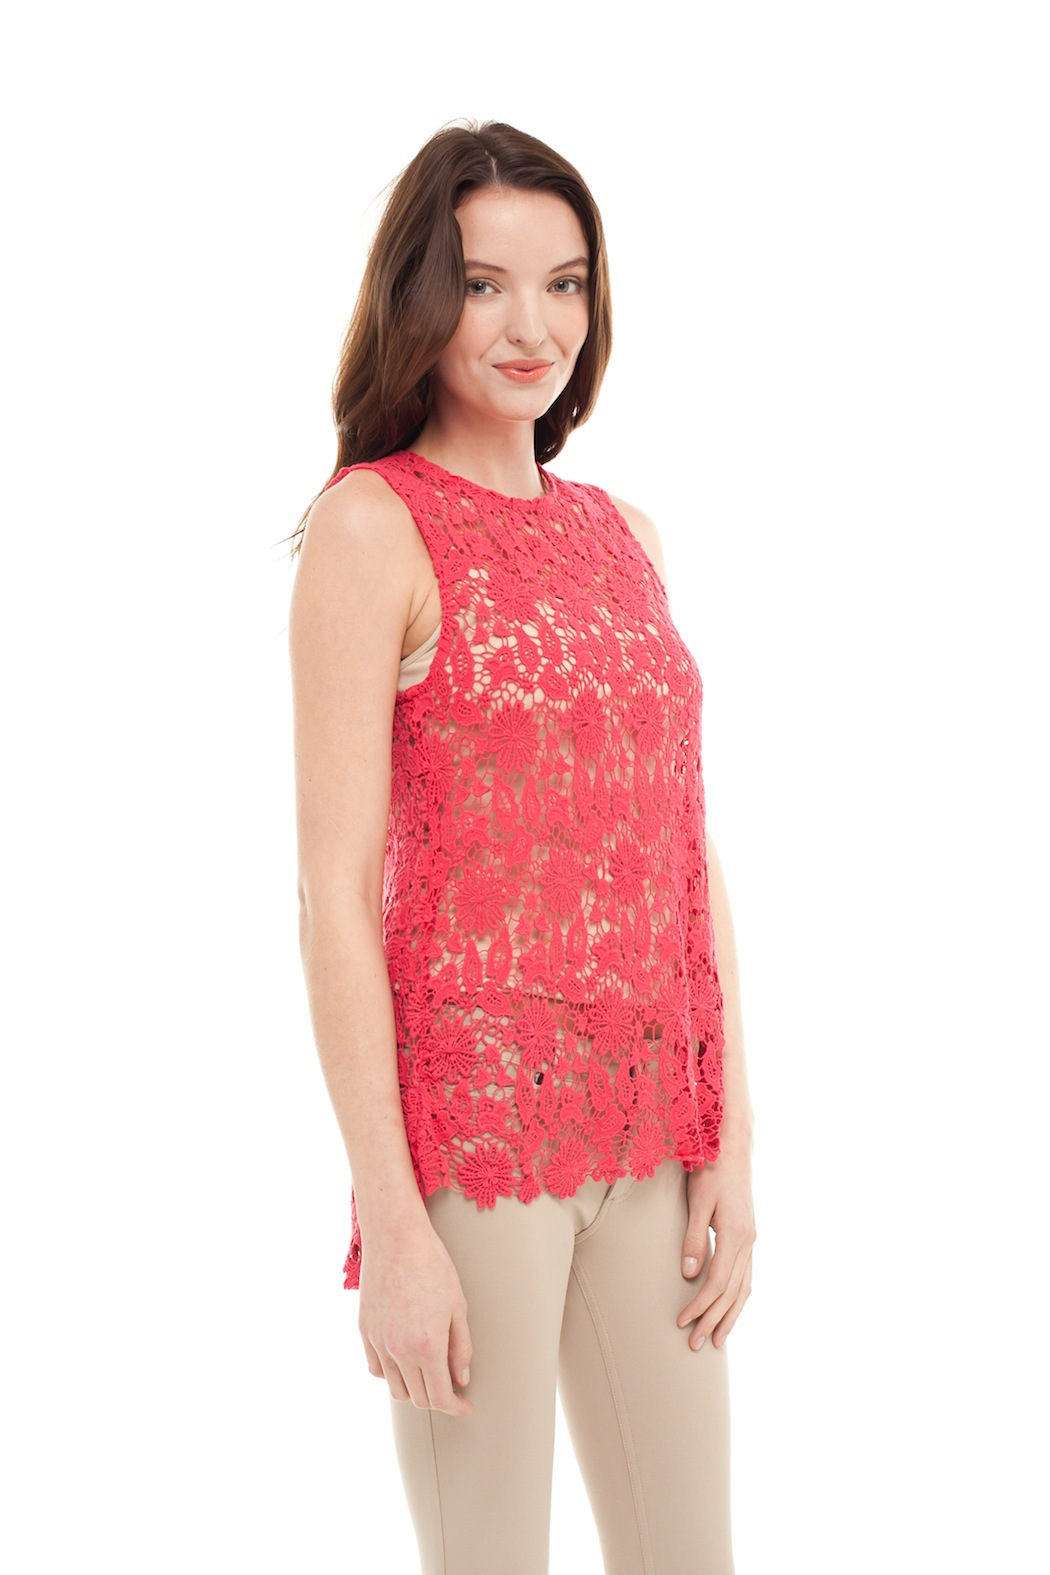 Alison Stiles Lace Crochet Knit Top - Side Cropped Image